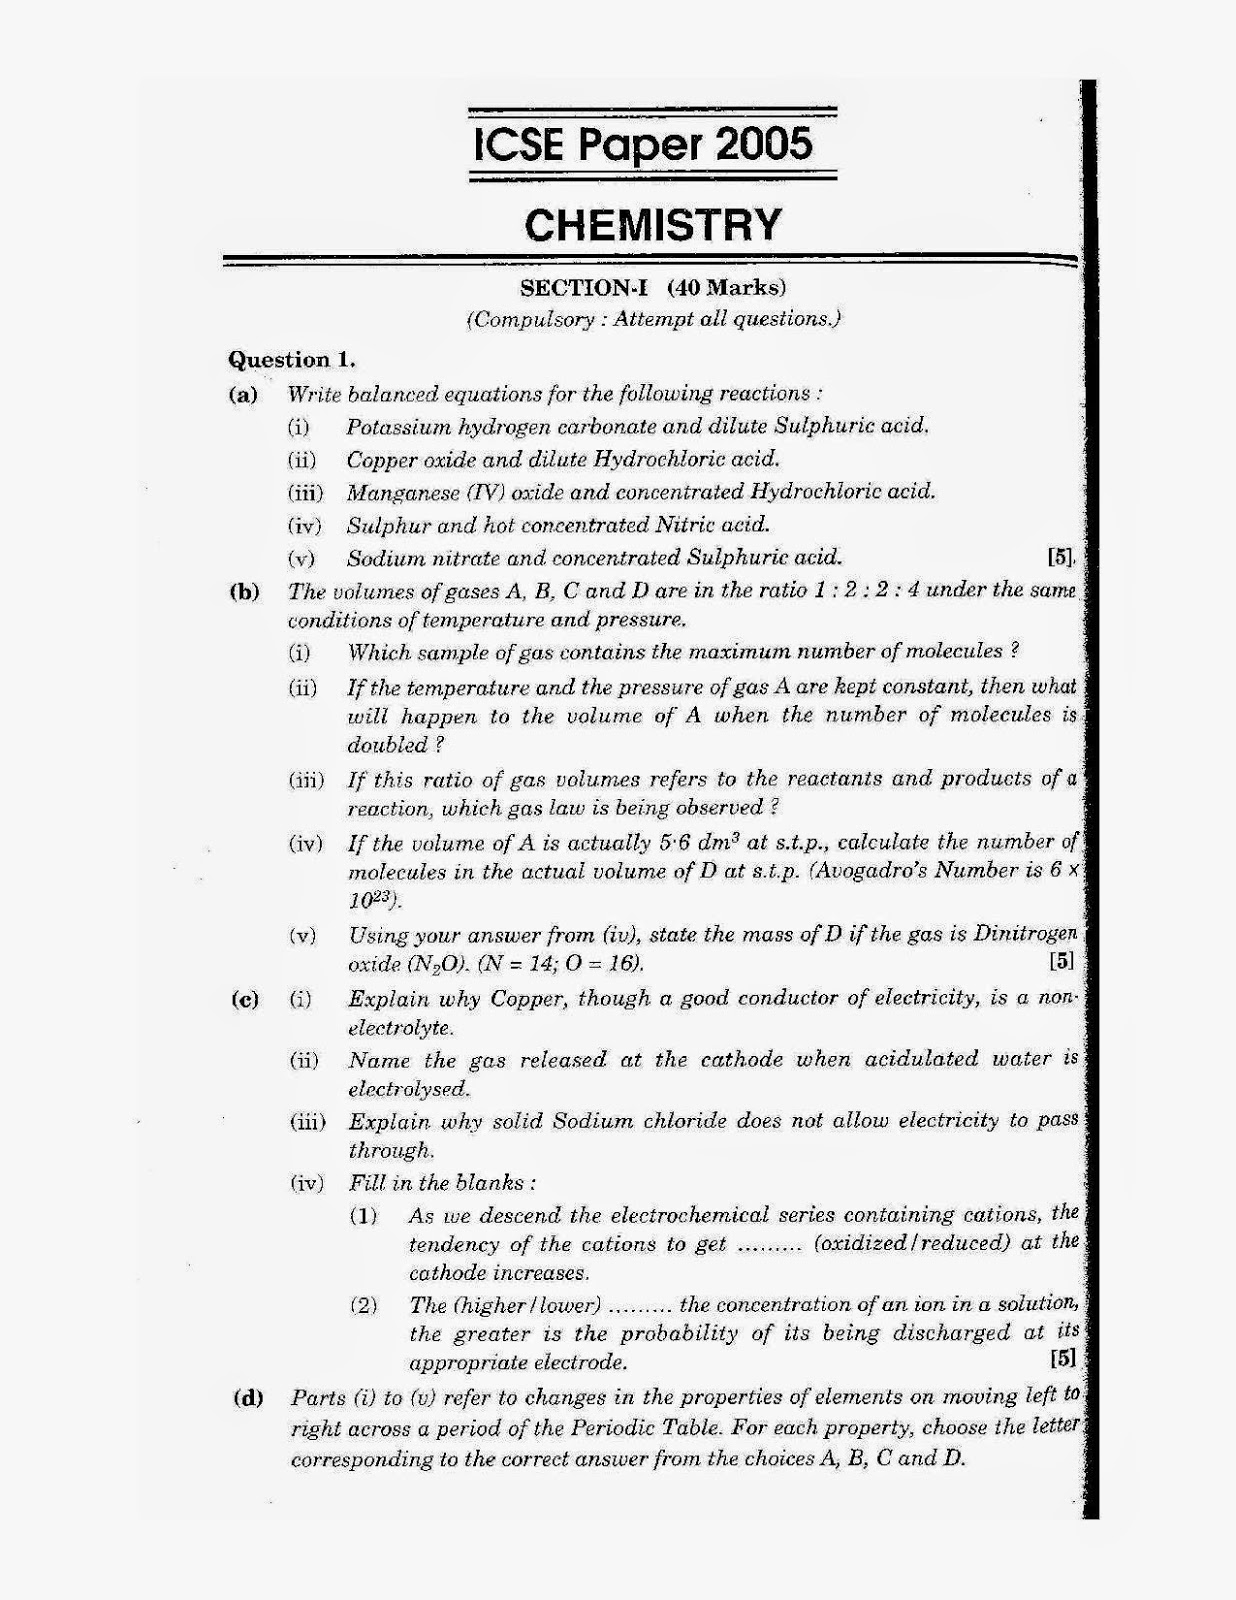 icse class 10th chemistry solved question paper 2005